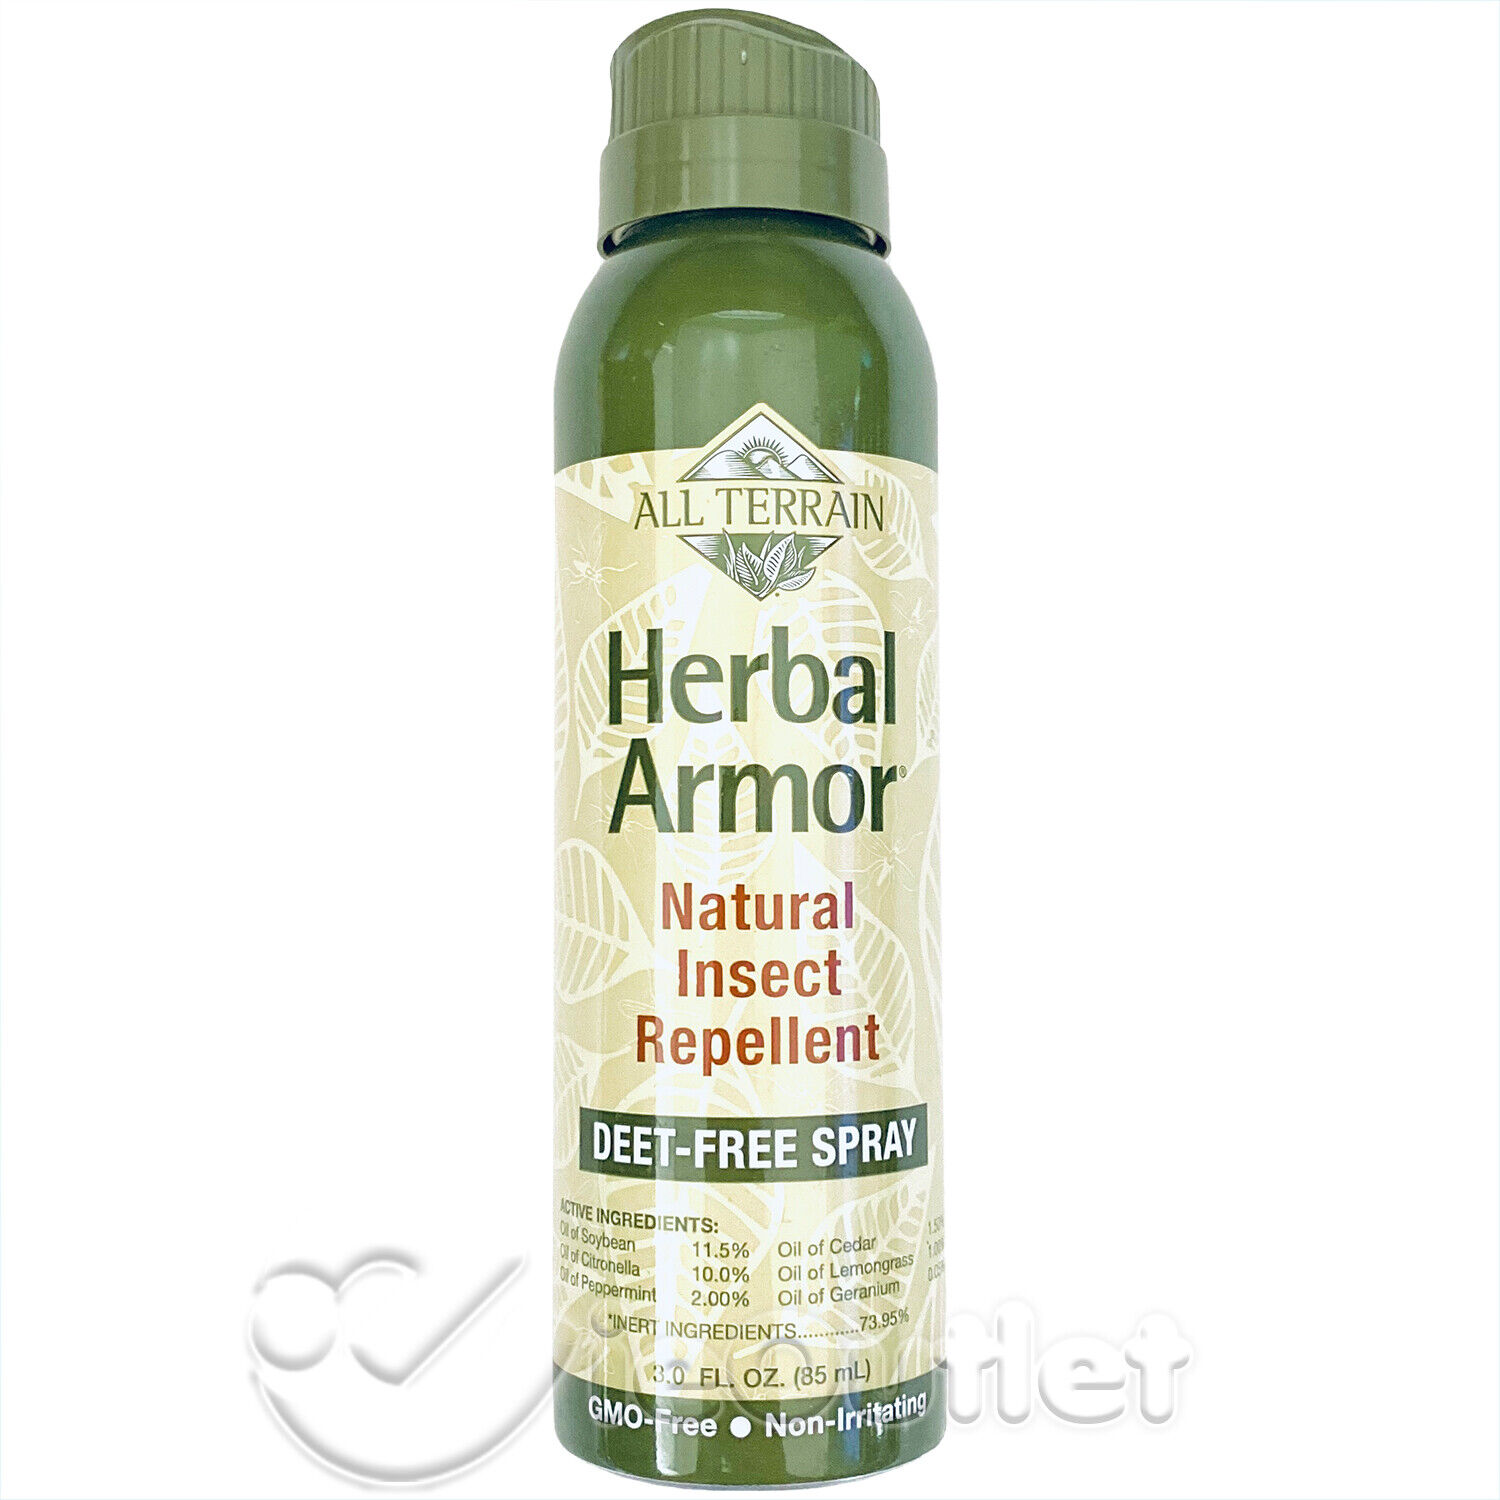 All Terrain DEET-Free Herbal Armor Insect Repellent, 3 Ounce